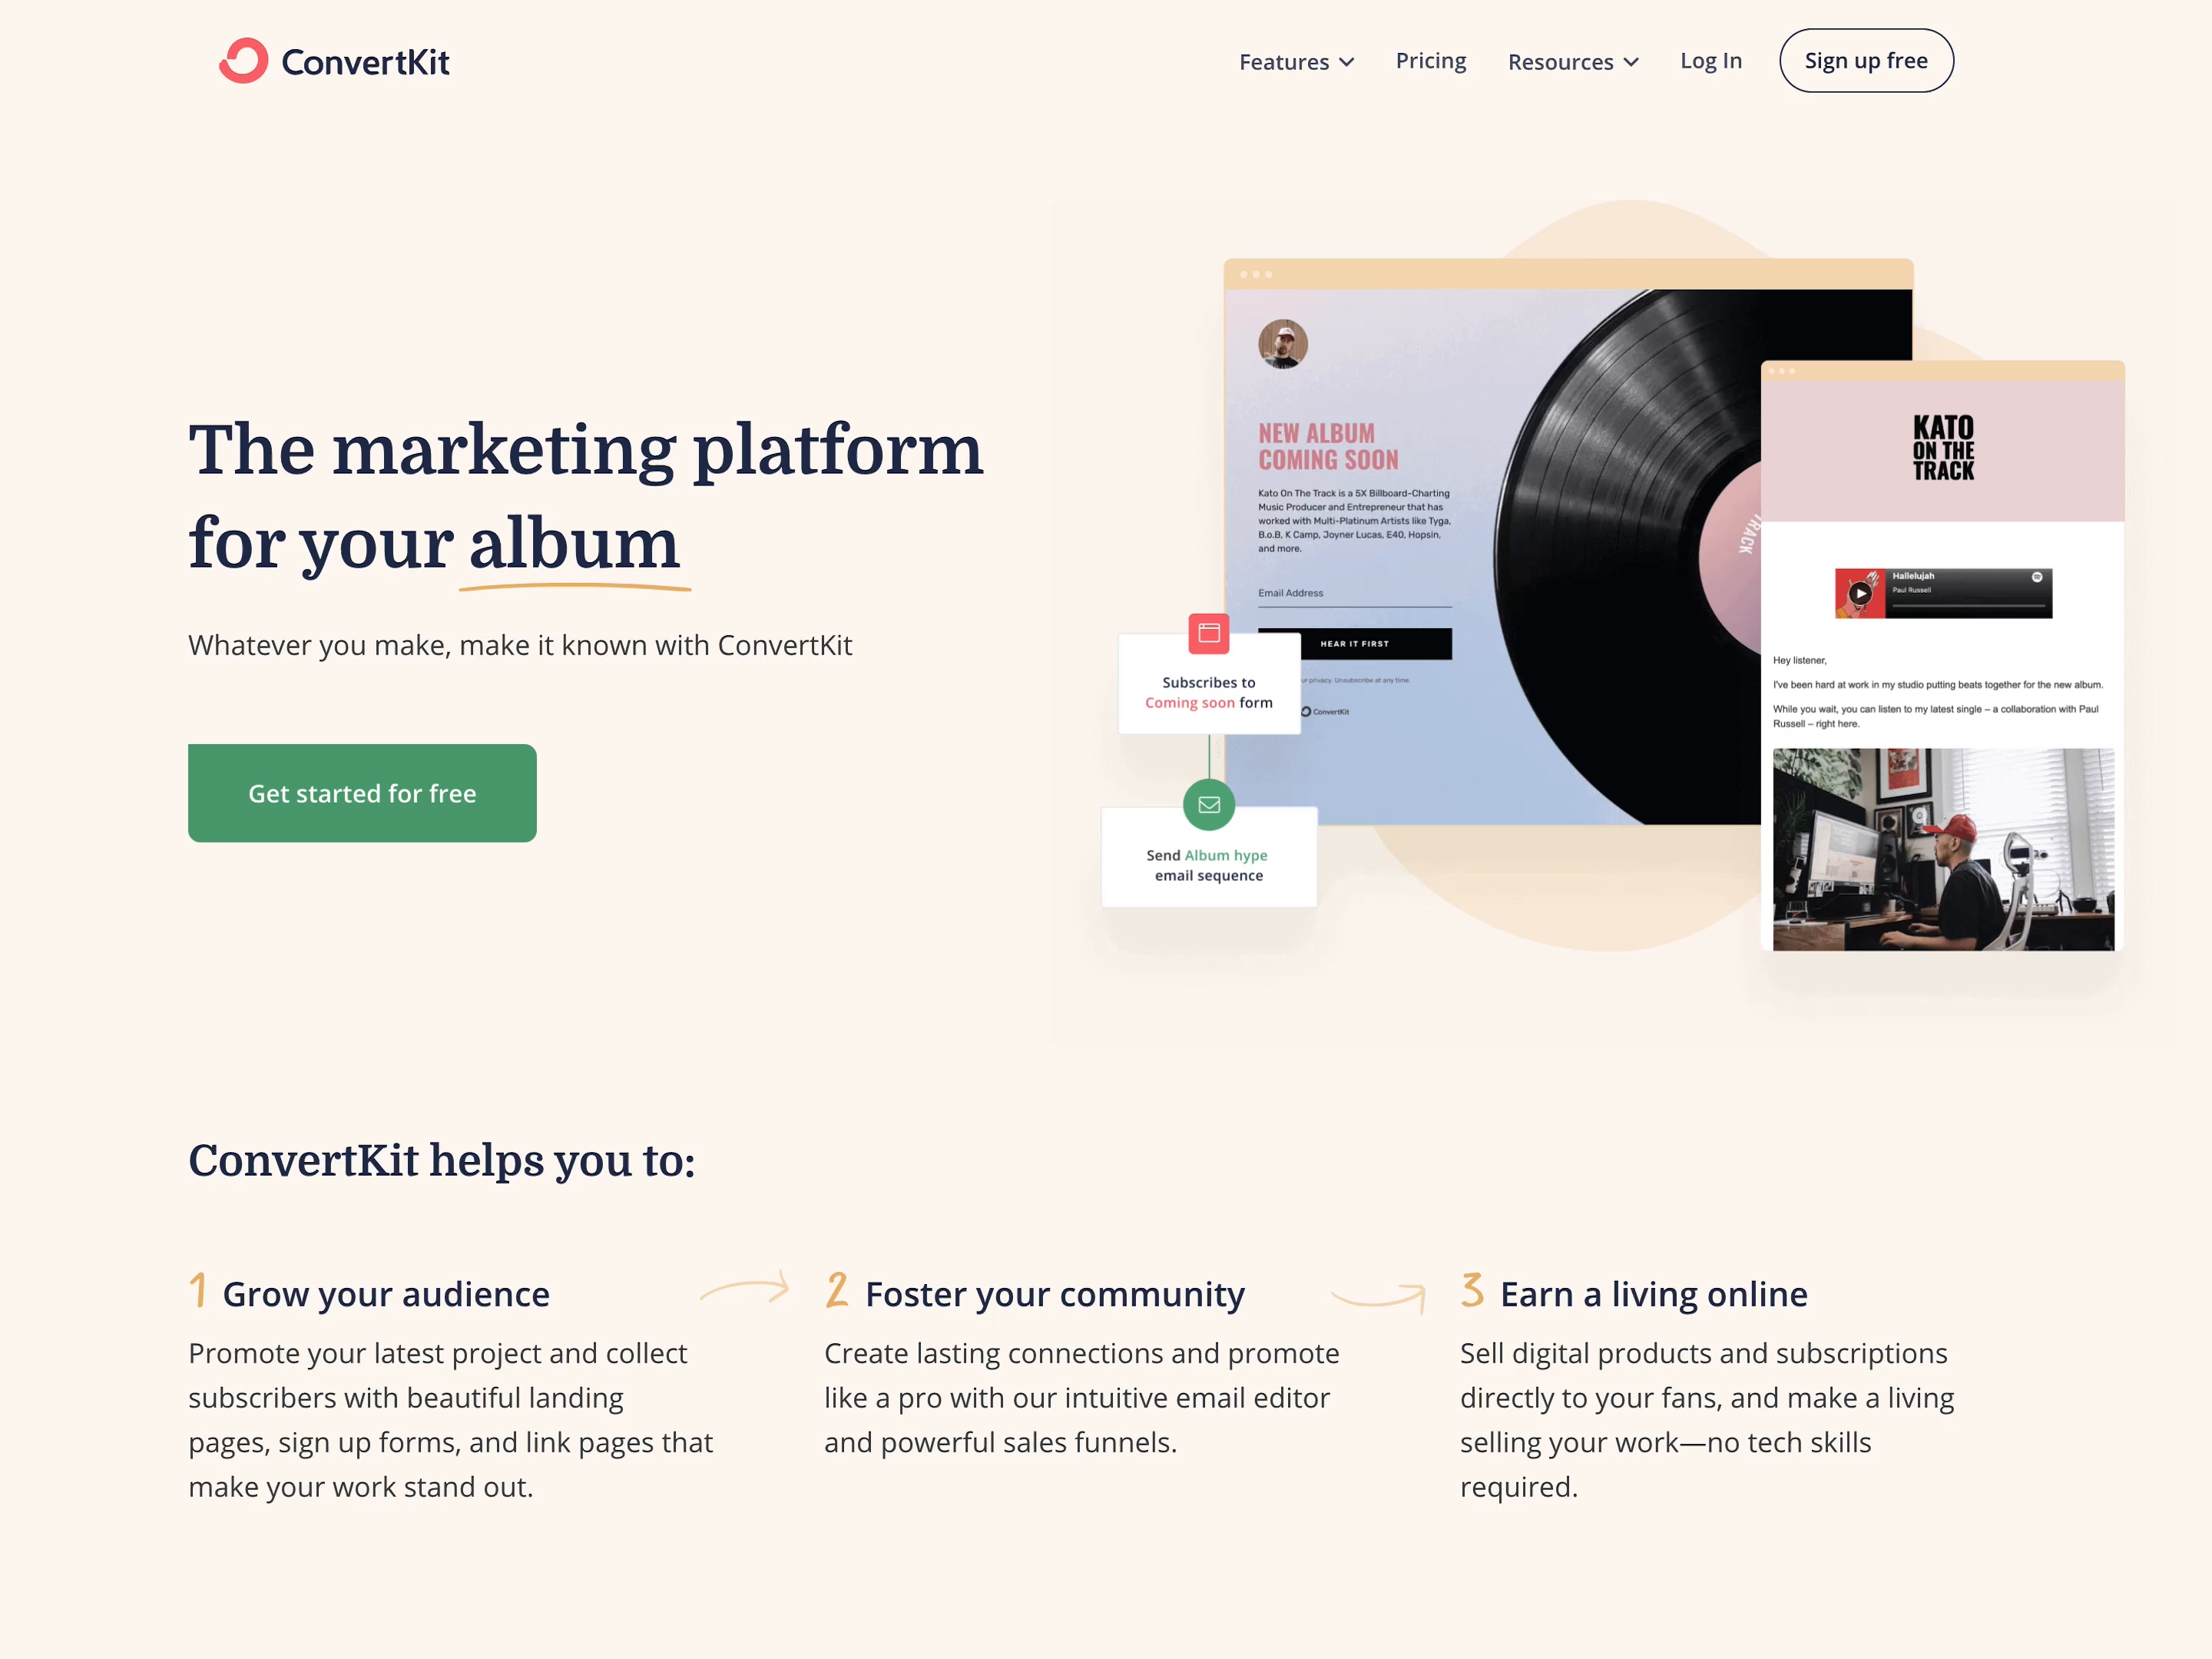 Make it known with ConvertKit - New homepage for 2021